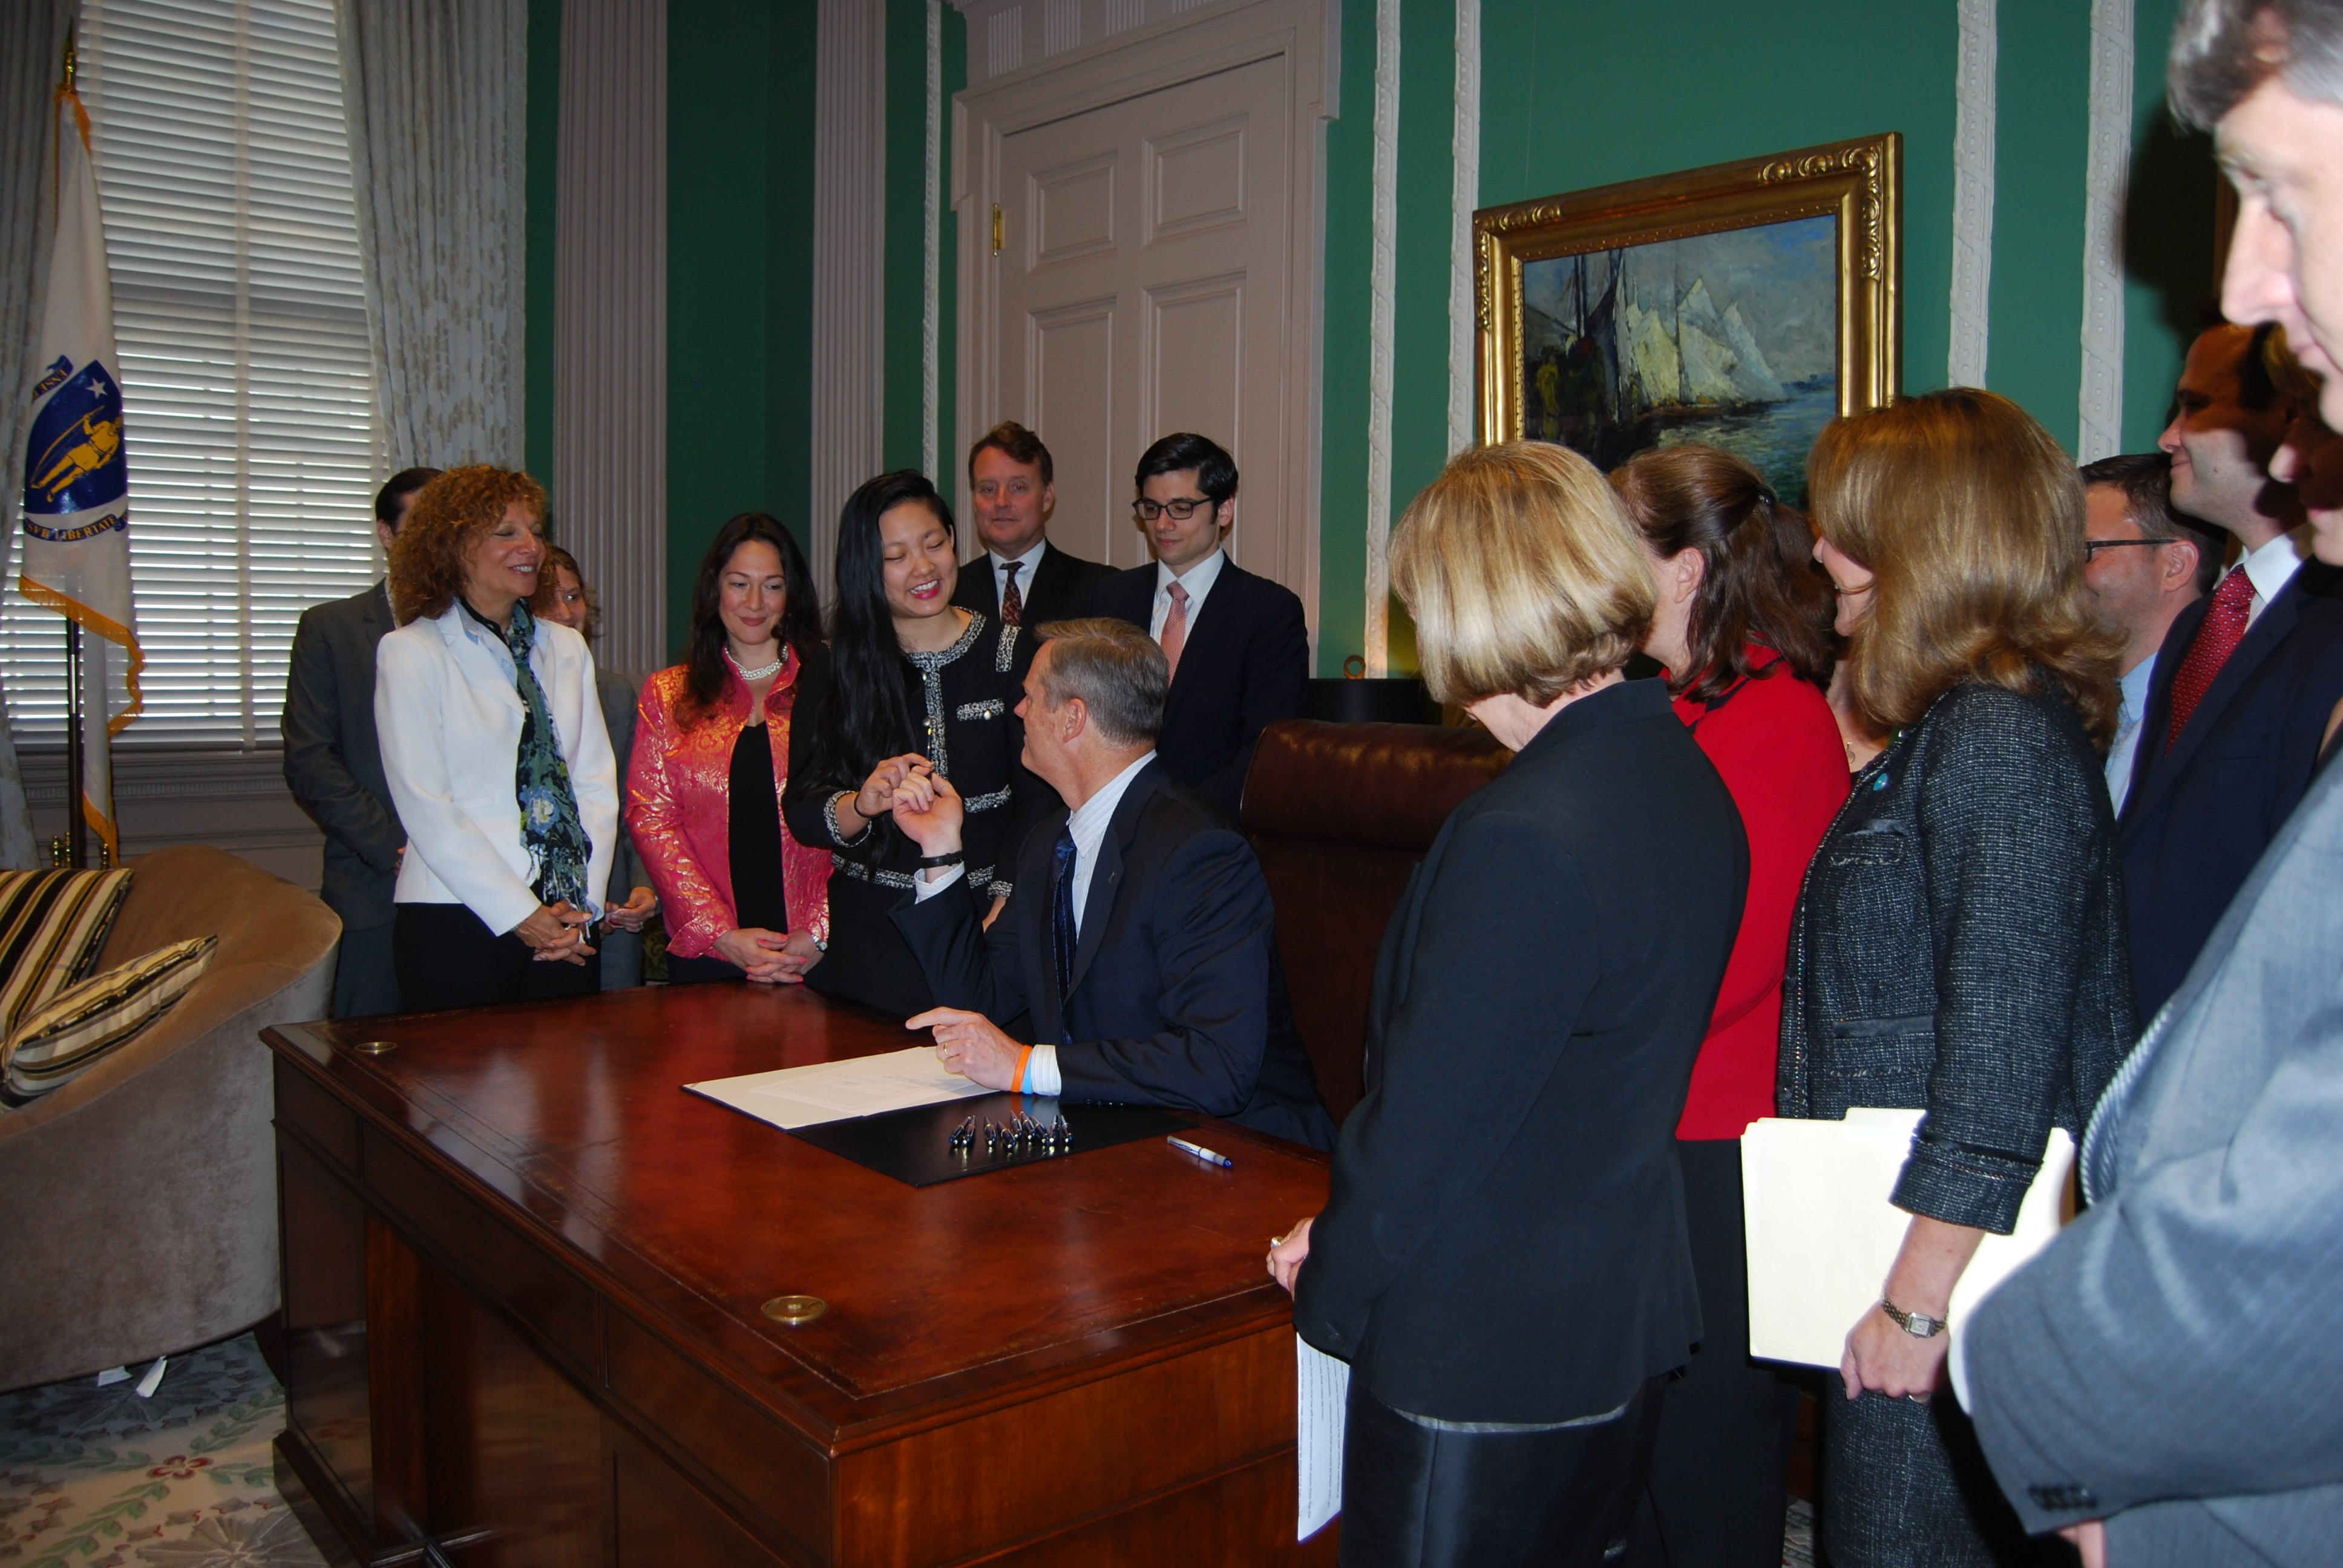 Governor Baker signs H. 4364 and hands a pen to Amanda Nguyen.